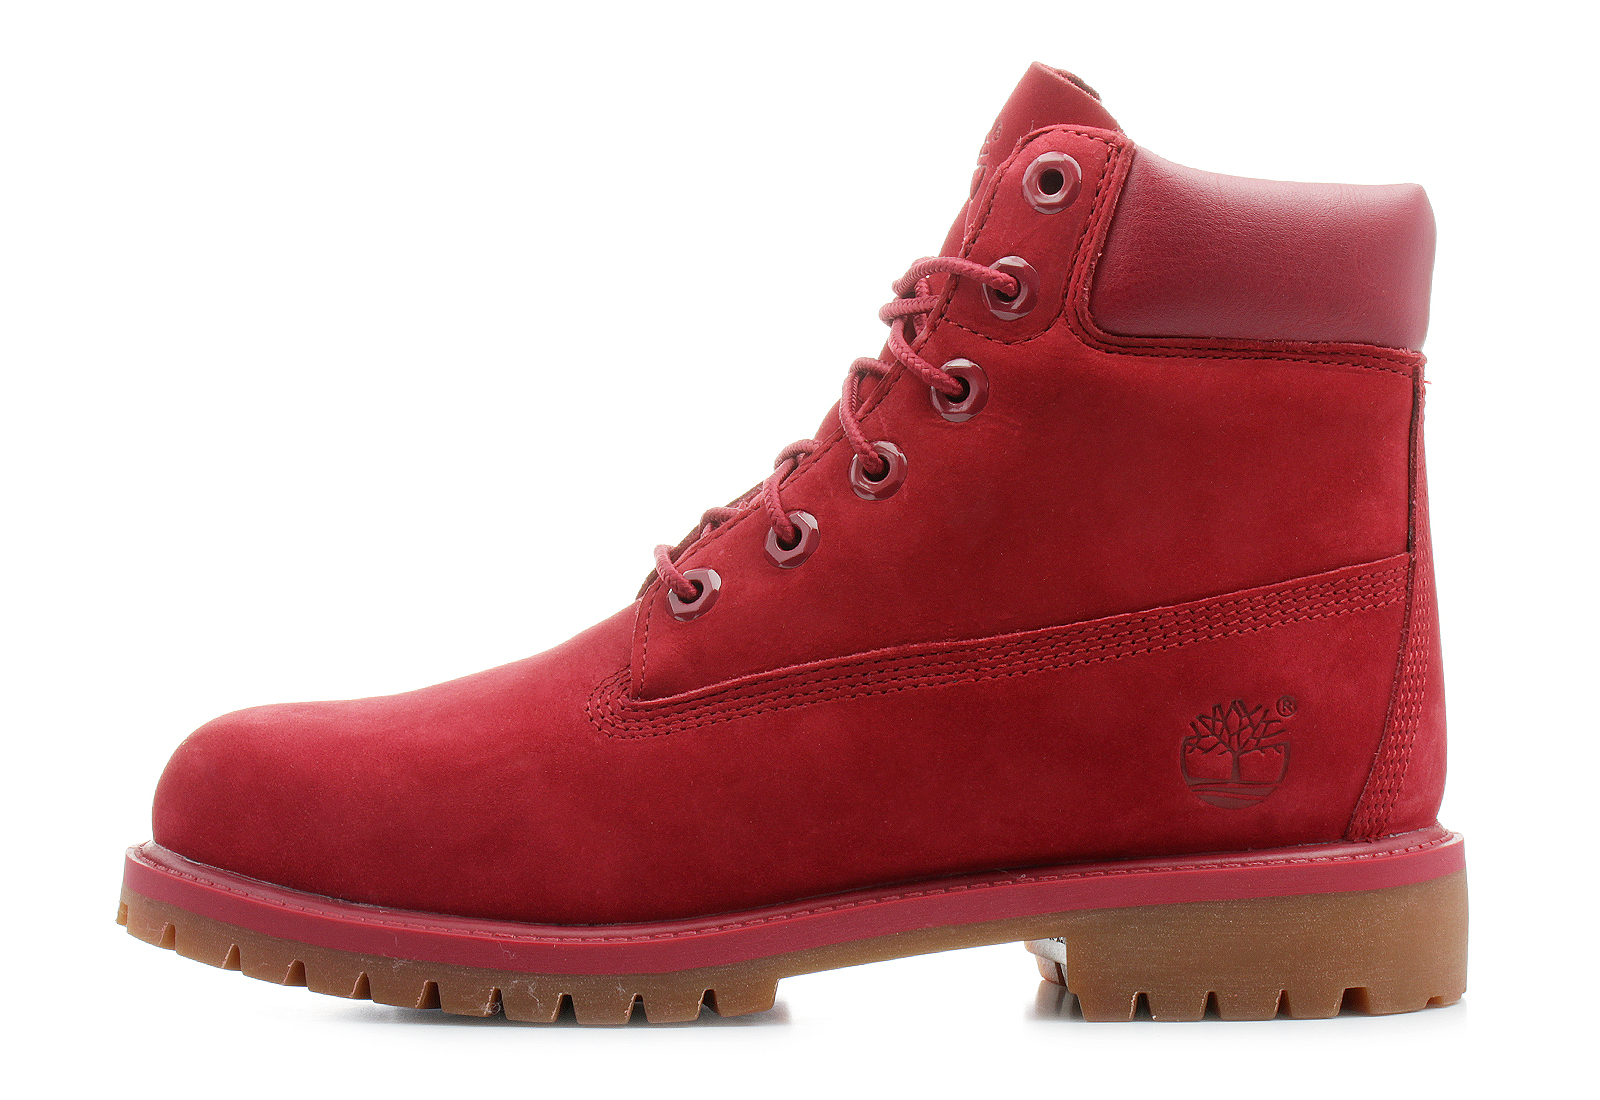 new specials vast selection release date Timberland Bocanci - 6 In Prem Boot - a13hv-red - Office Shoes Romania